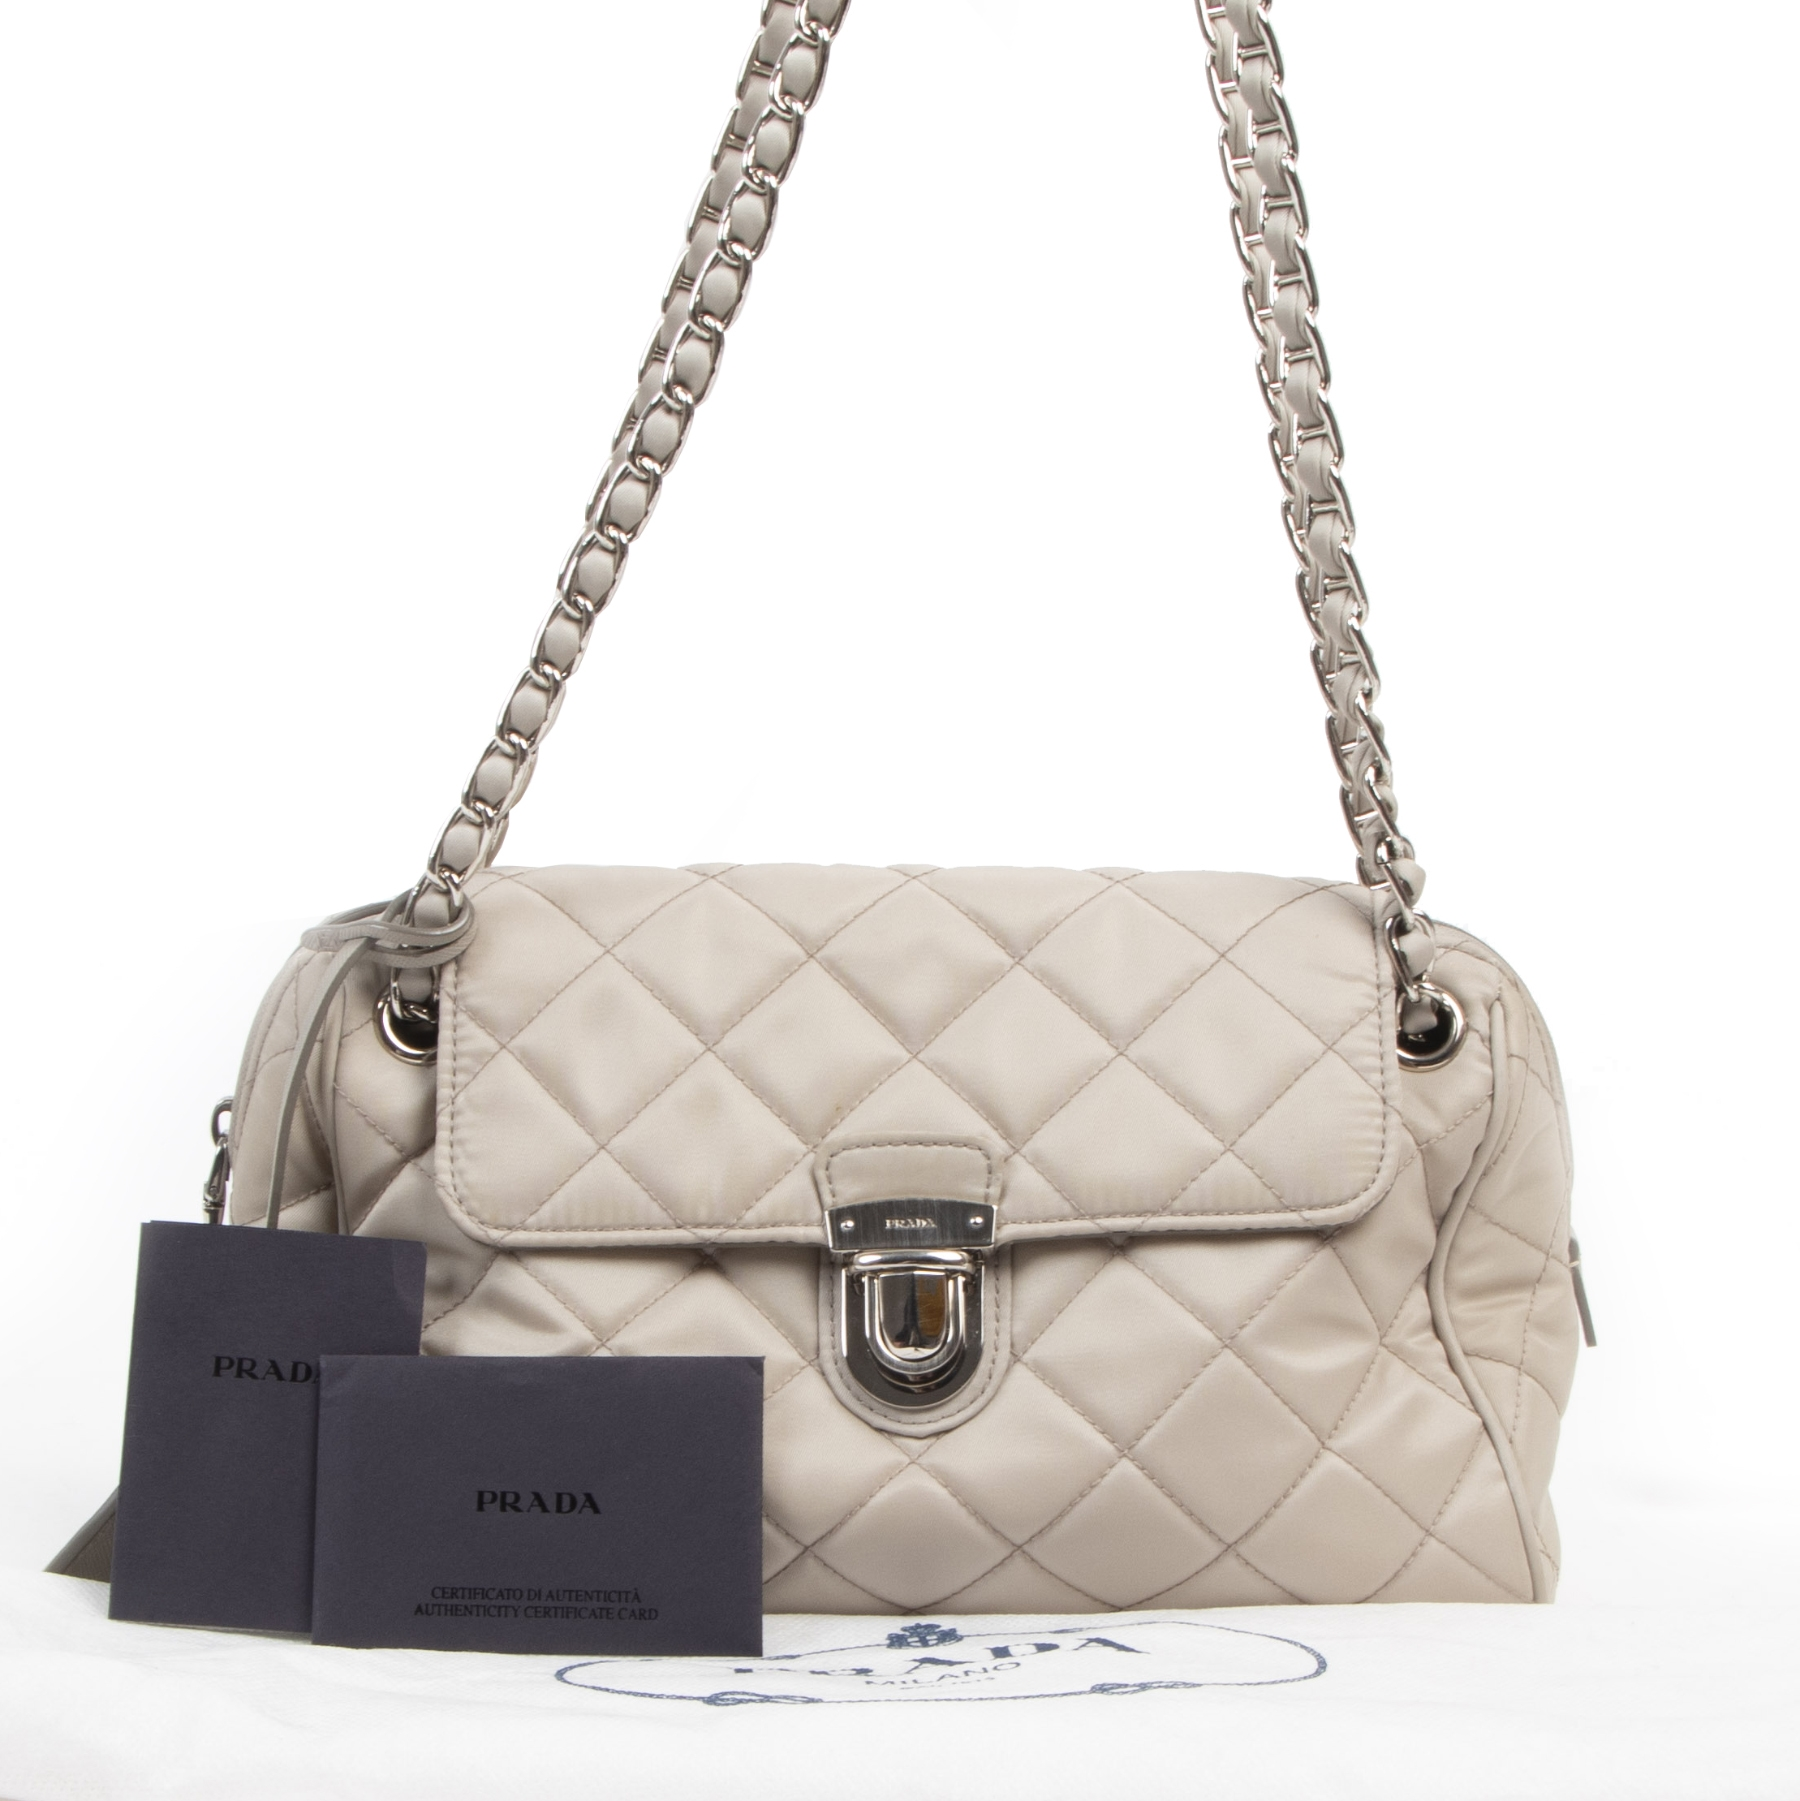 Authentique seconde-main vintage Prada Beige Nylon Shoulder Bag achète en ligne webshop LabelLOV